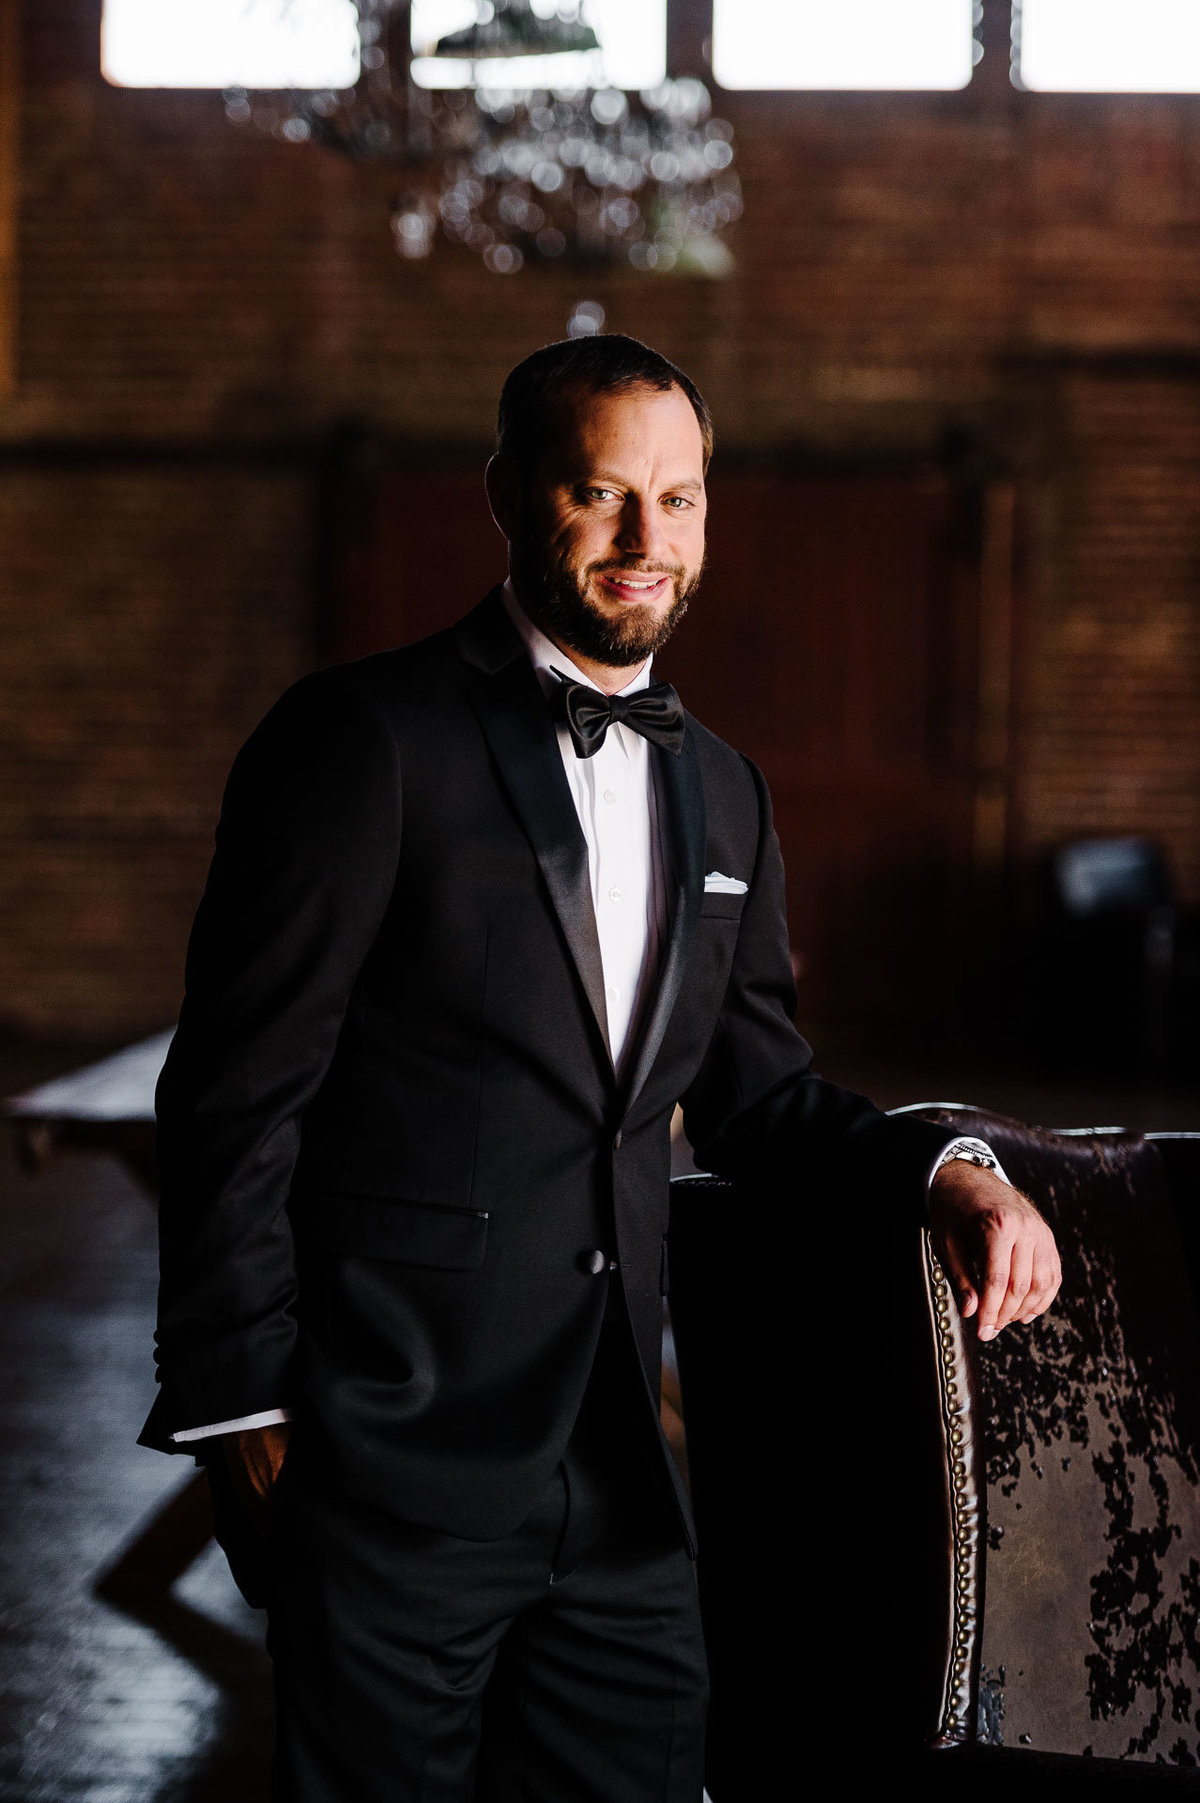 groom portrait at epic railyard in el paso by stephane lemaire photography